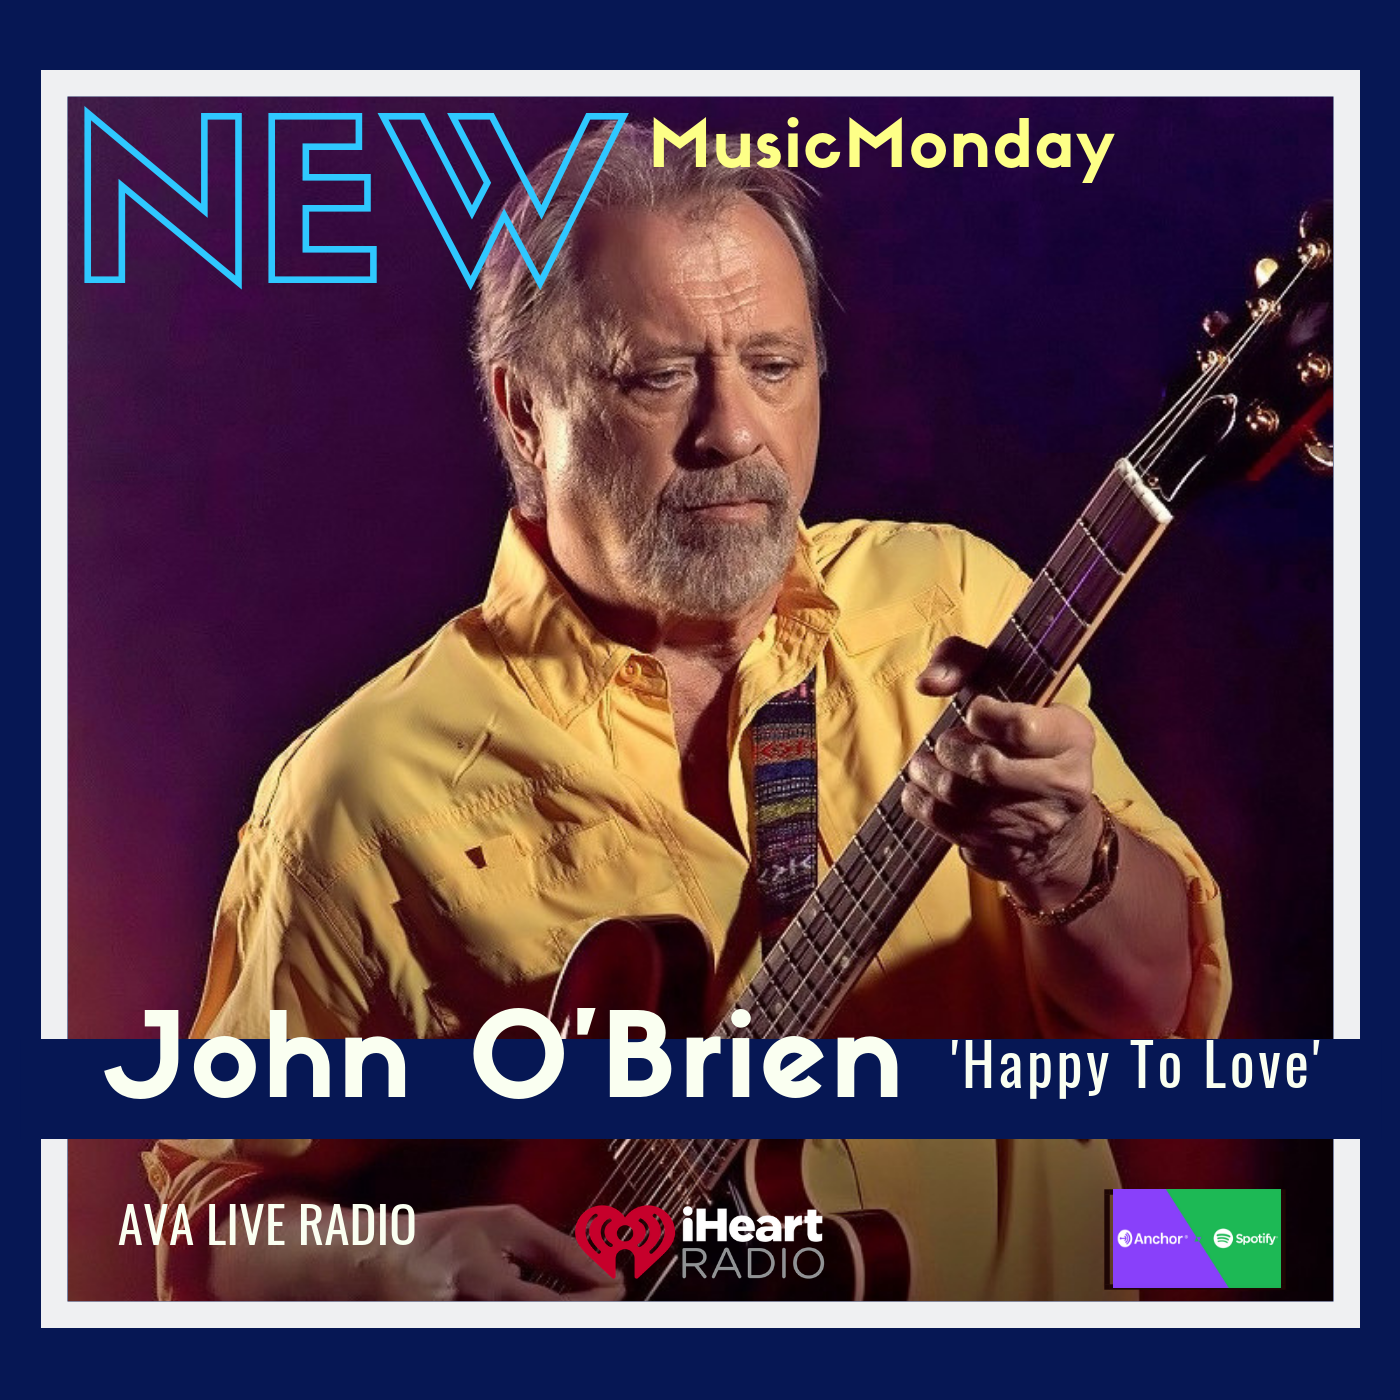 John Obrien new music monday Happy to love.png